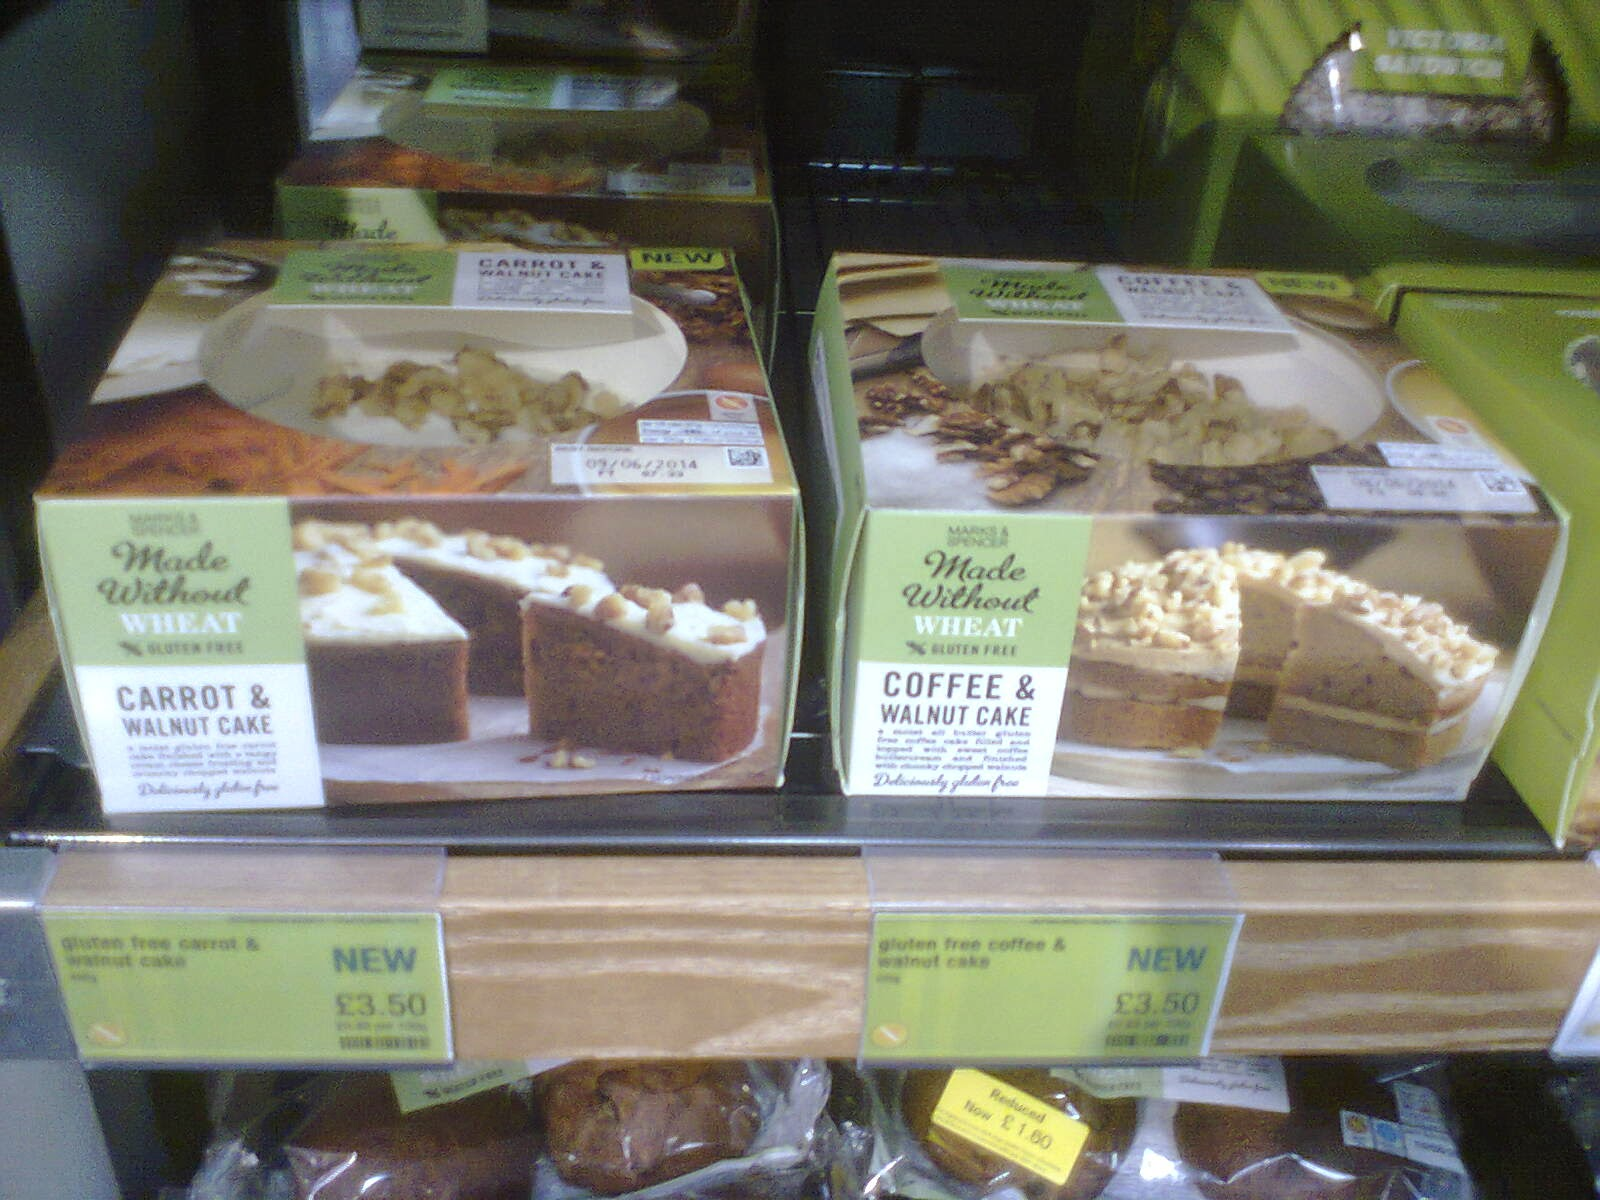 The M&S Made Without Wheat Carrot & Walnut Cake and Coffee and Walnut Cake. I haven't tried these. Yet.